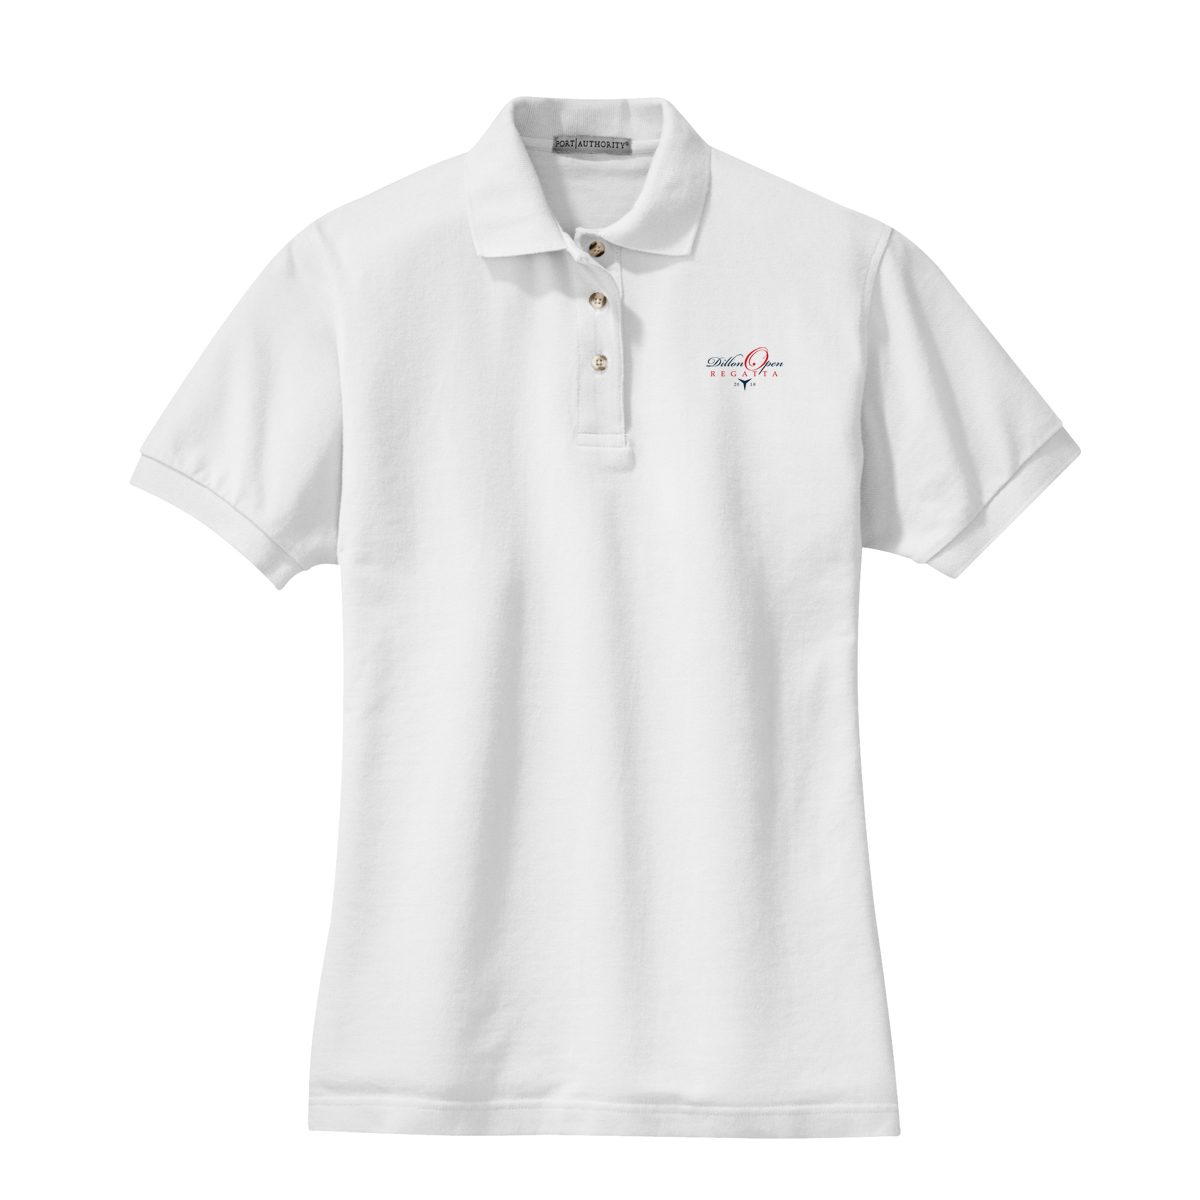 DILLON OPEN REGATTA 2018 - W'S COTTON POLO